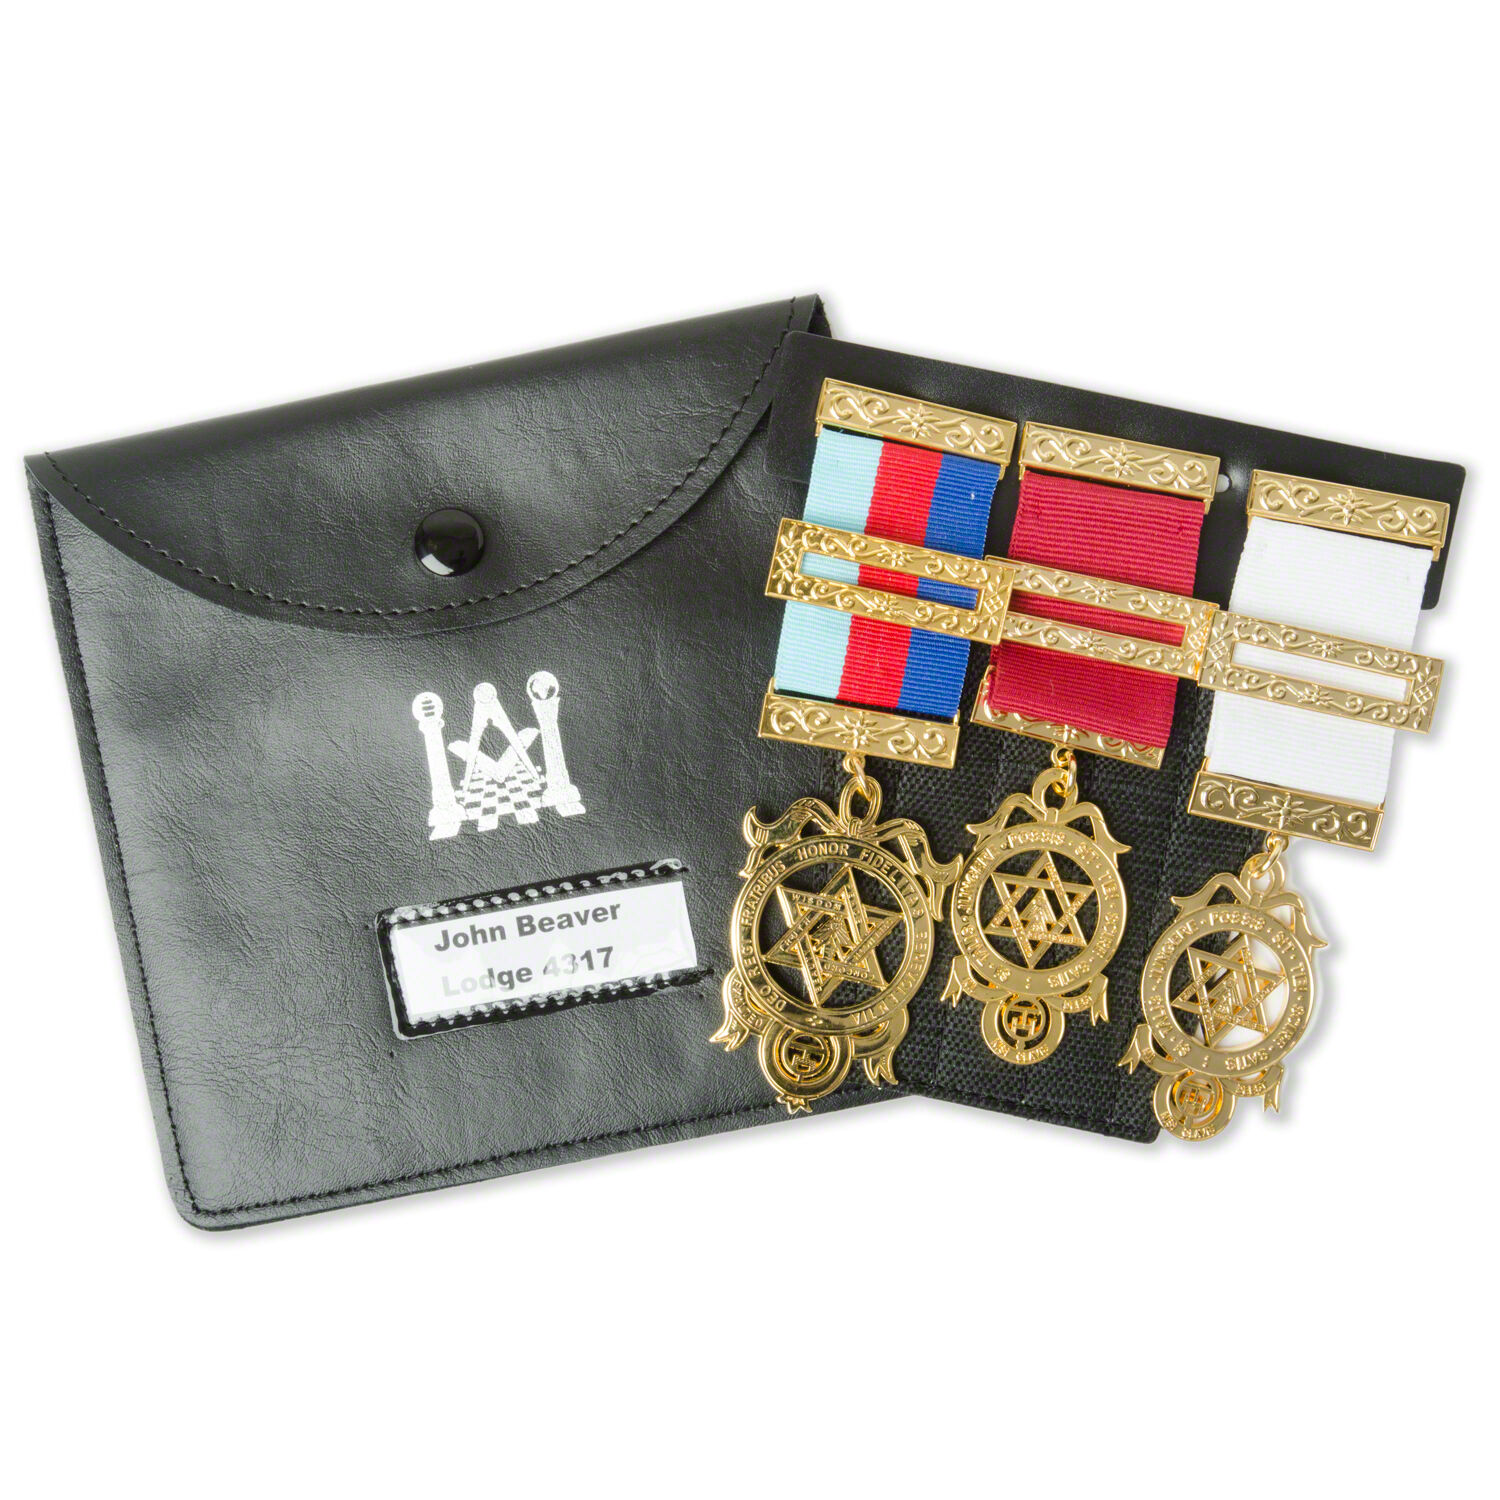 sports shoes b1e3b cd4b9 Details about New Masonic Pocket Jewel Holder and Carry Case / pouch/ Wallet